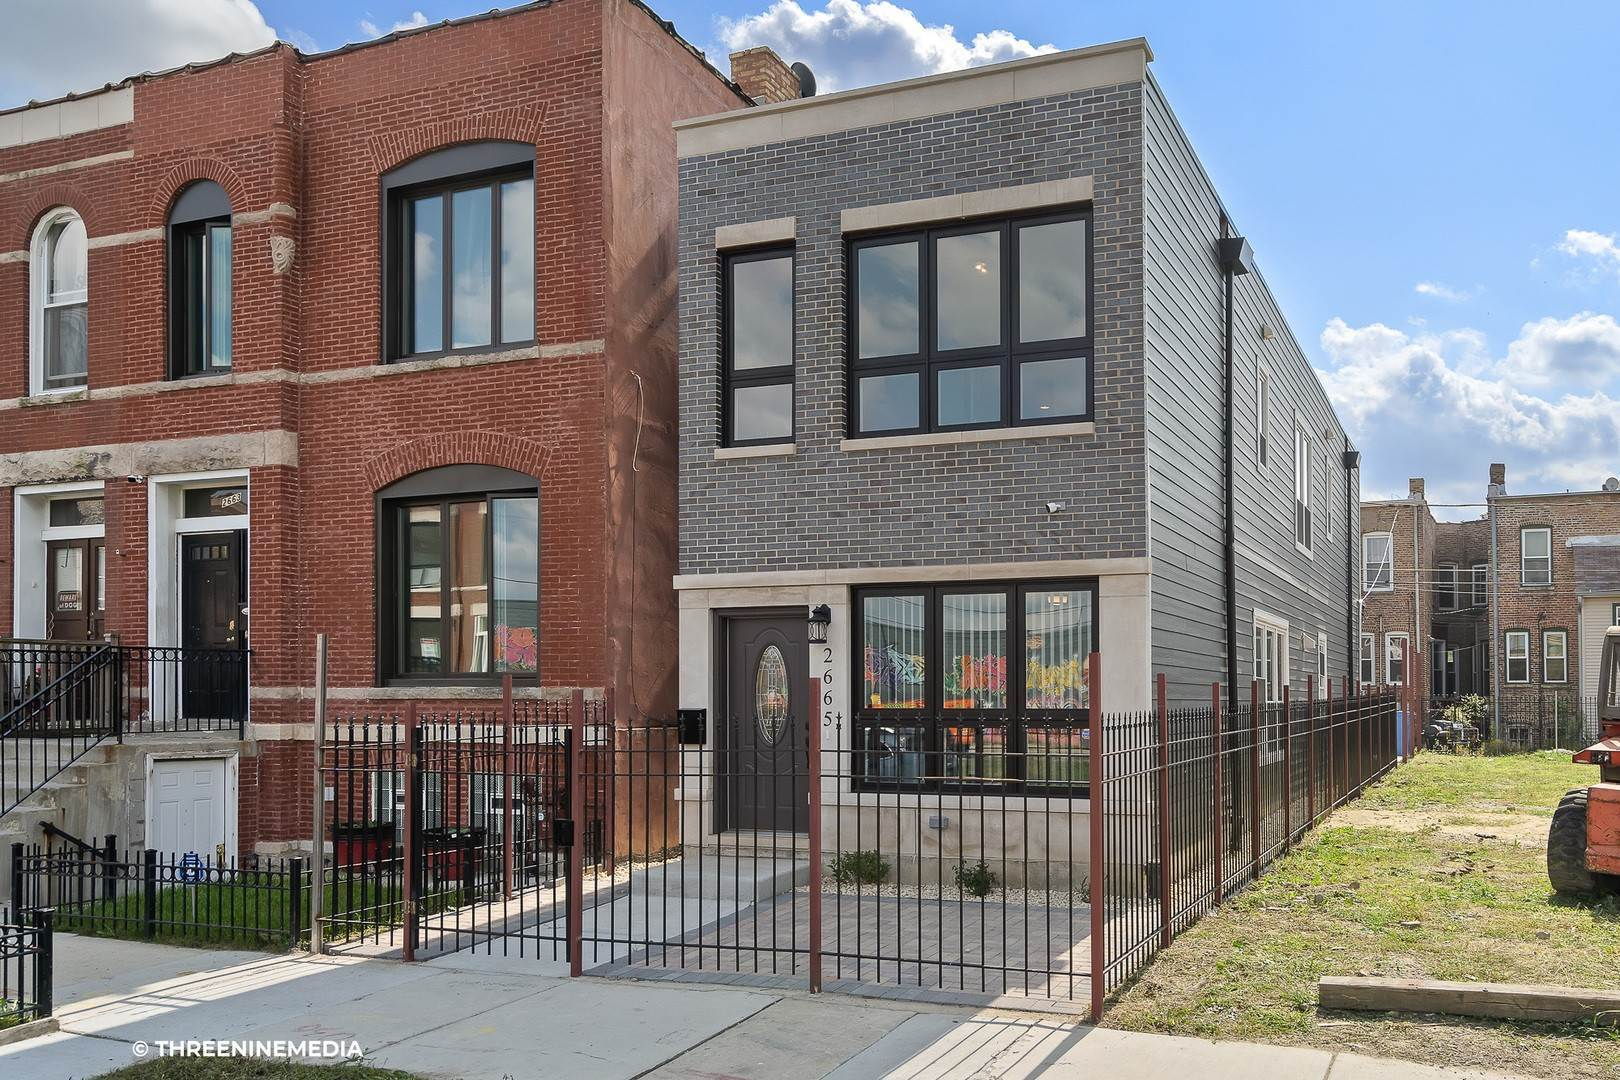 Property for Sale at 2665 W Maypole Avenue Chicago, Illinois 60612 United States